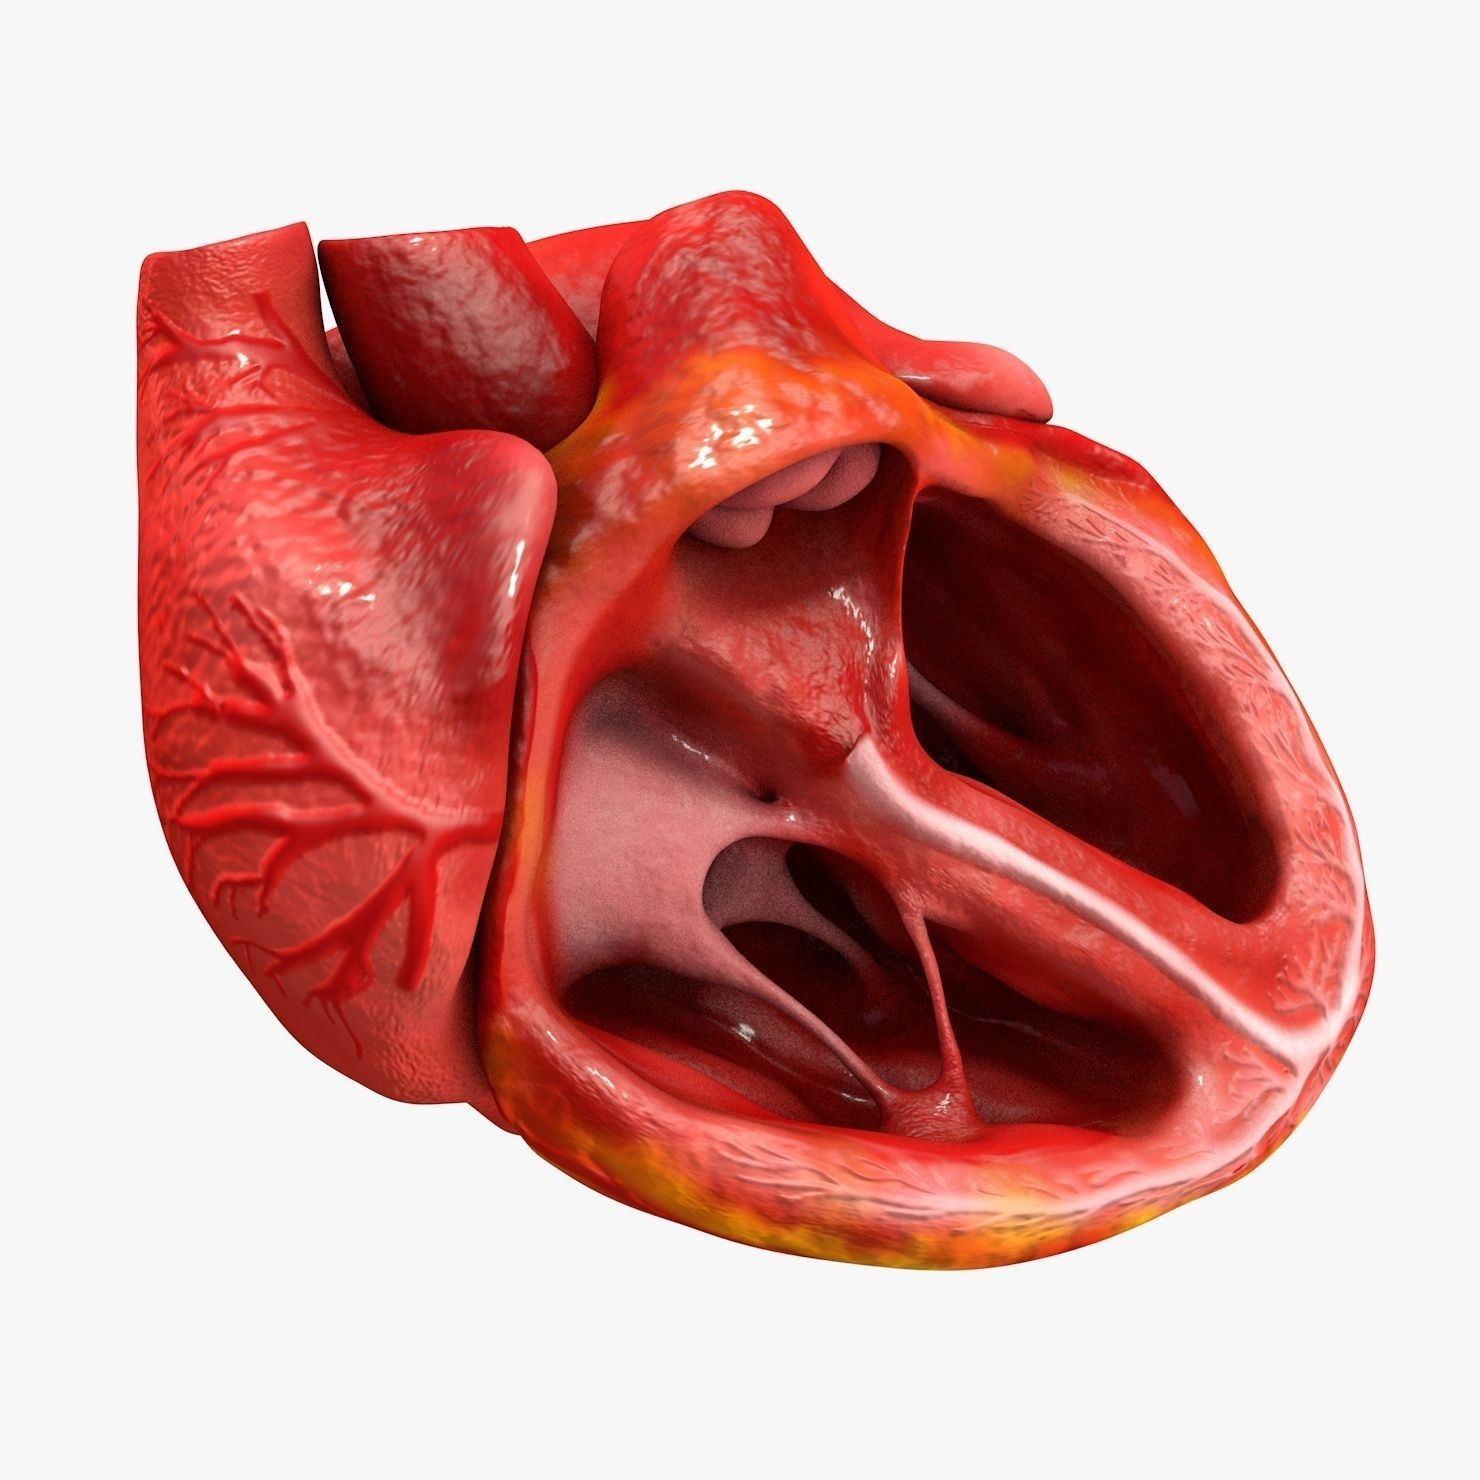 Animated human heart - photo#41